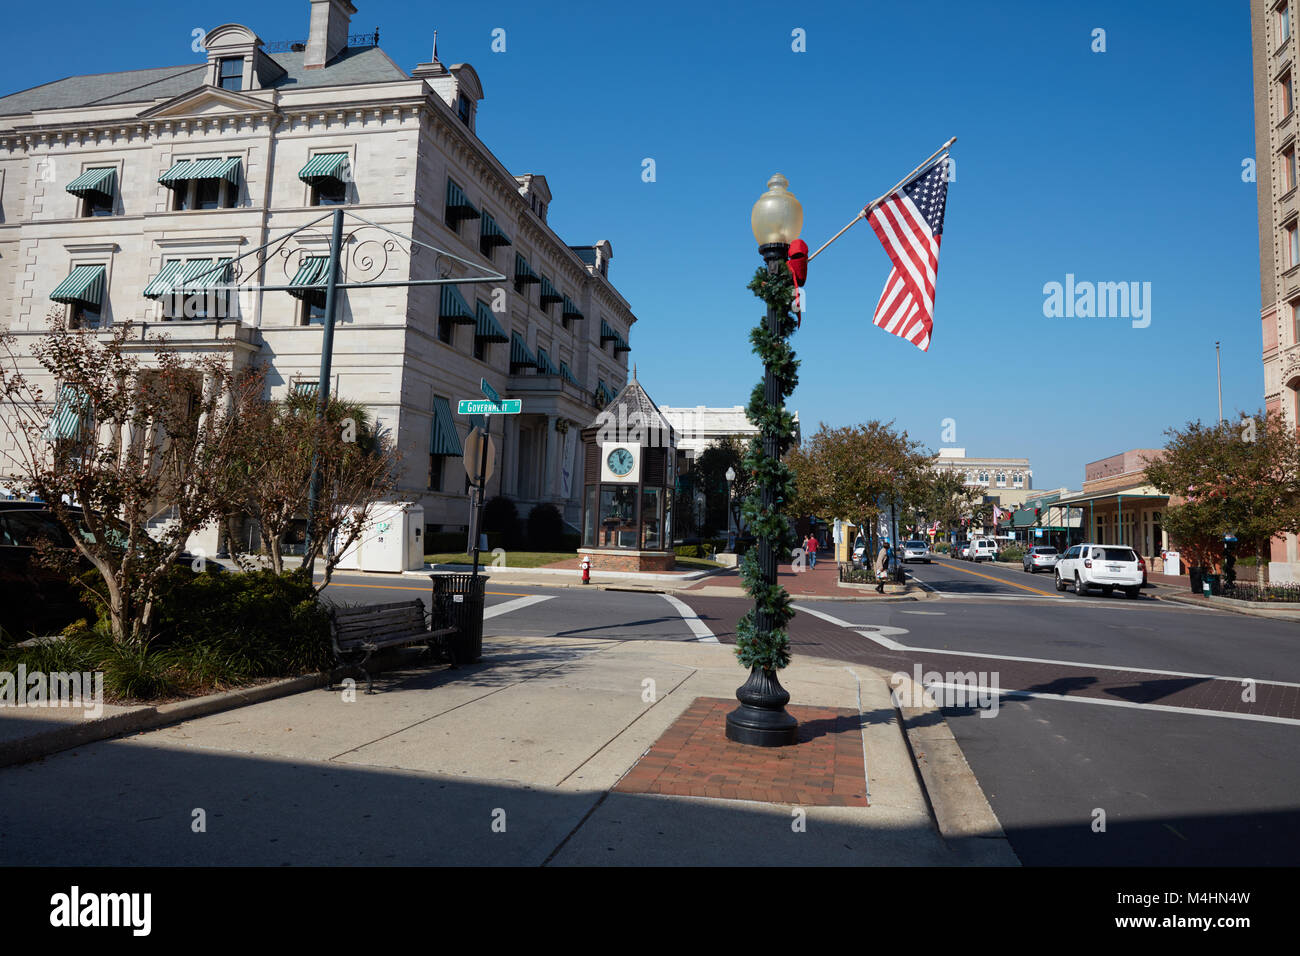 Downtown Pensacola with lamp post decorated for Christmas, Florida - Stock Image